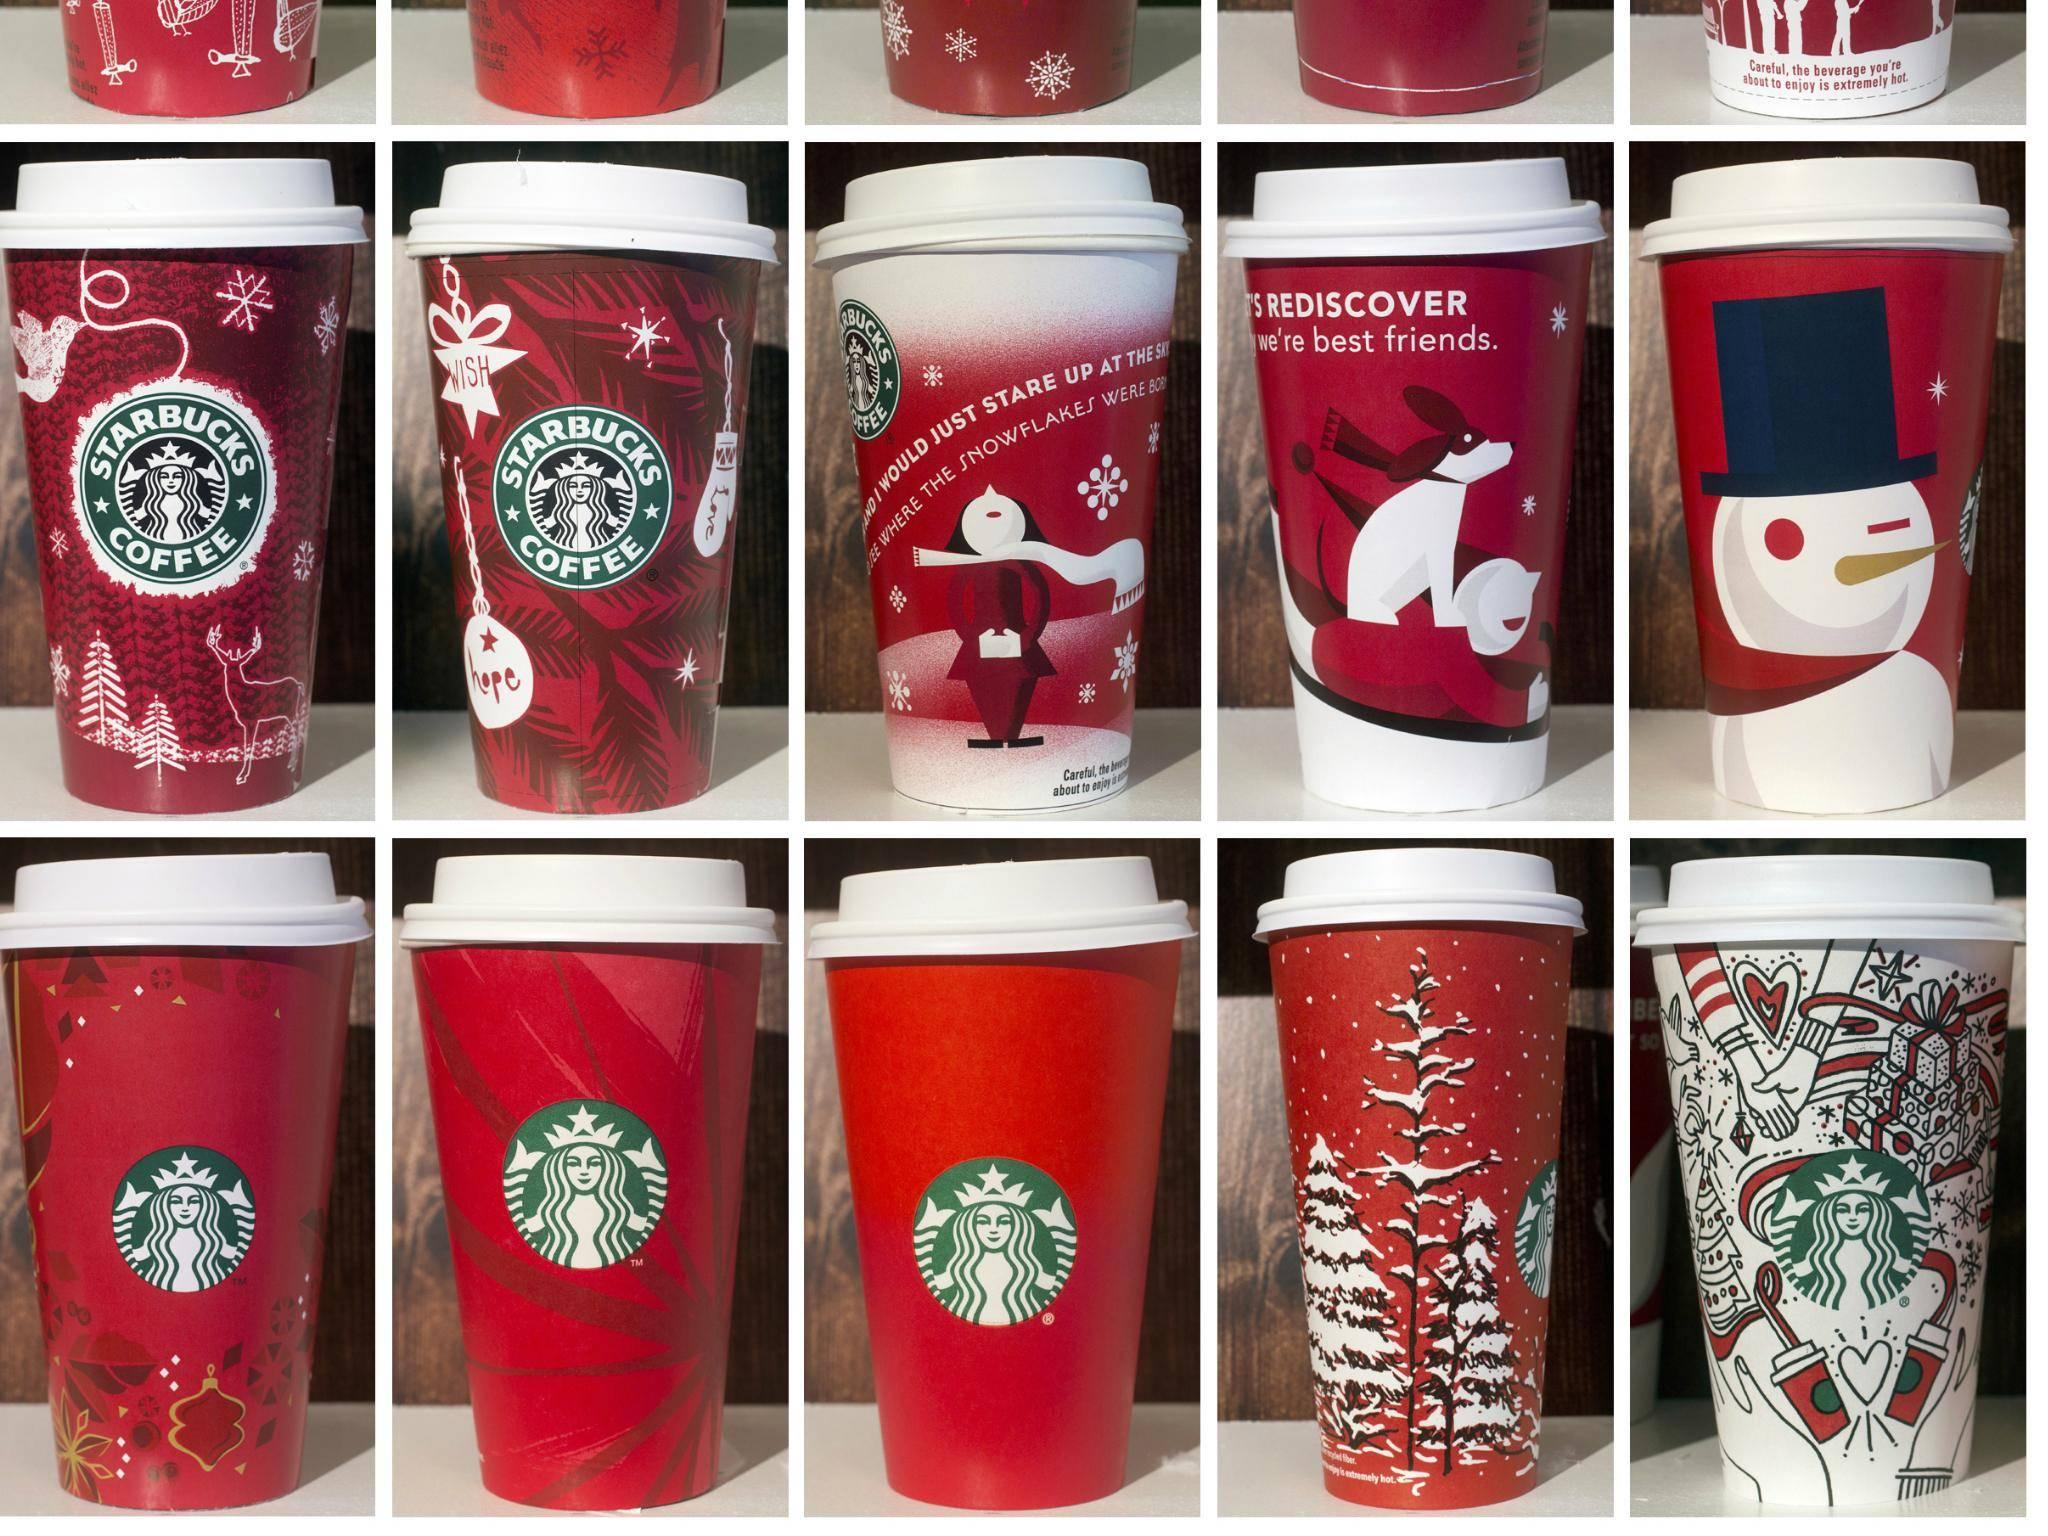 Starbucks under fire over holiday cups that 'feature same-sex couples' hands'